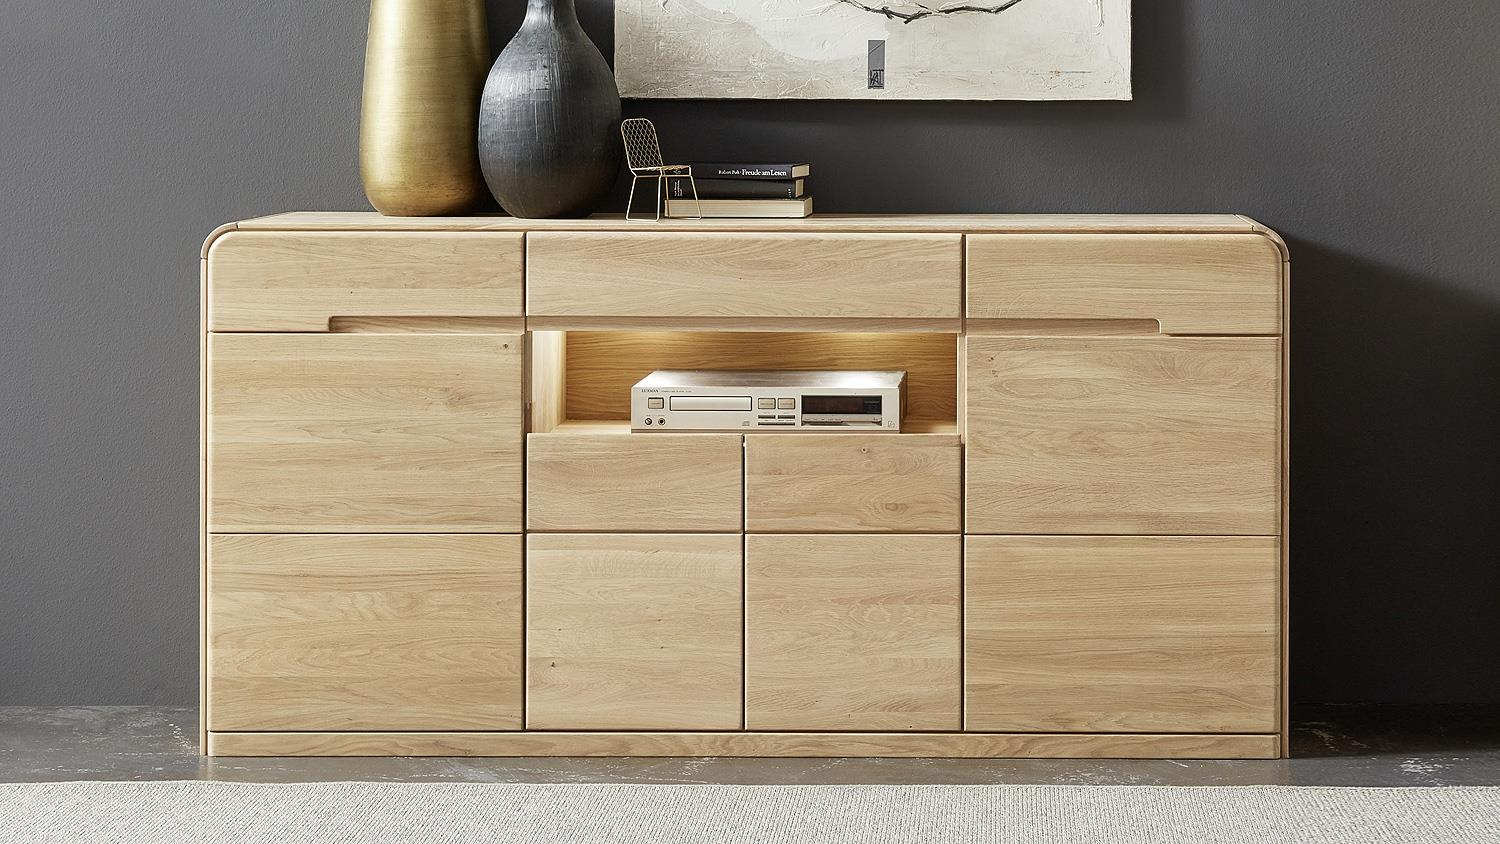 stunning sideboard f r wohnzimmer images ridgewayng. Black Bedroom Furniture Sets. Home Design Ideas